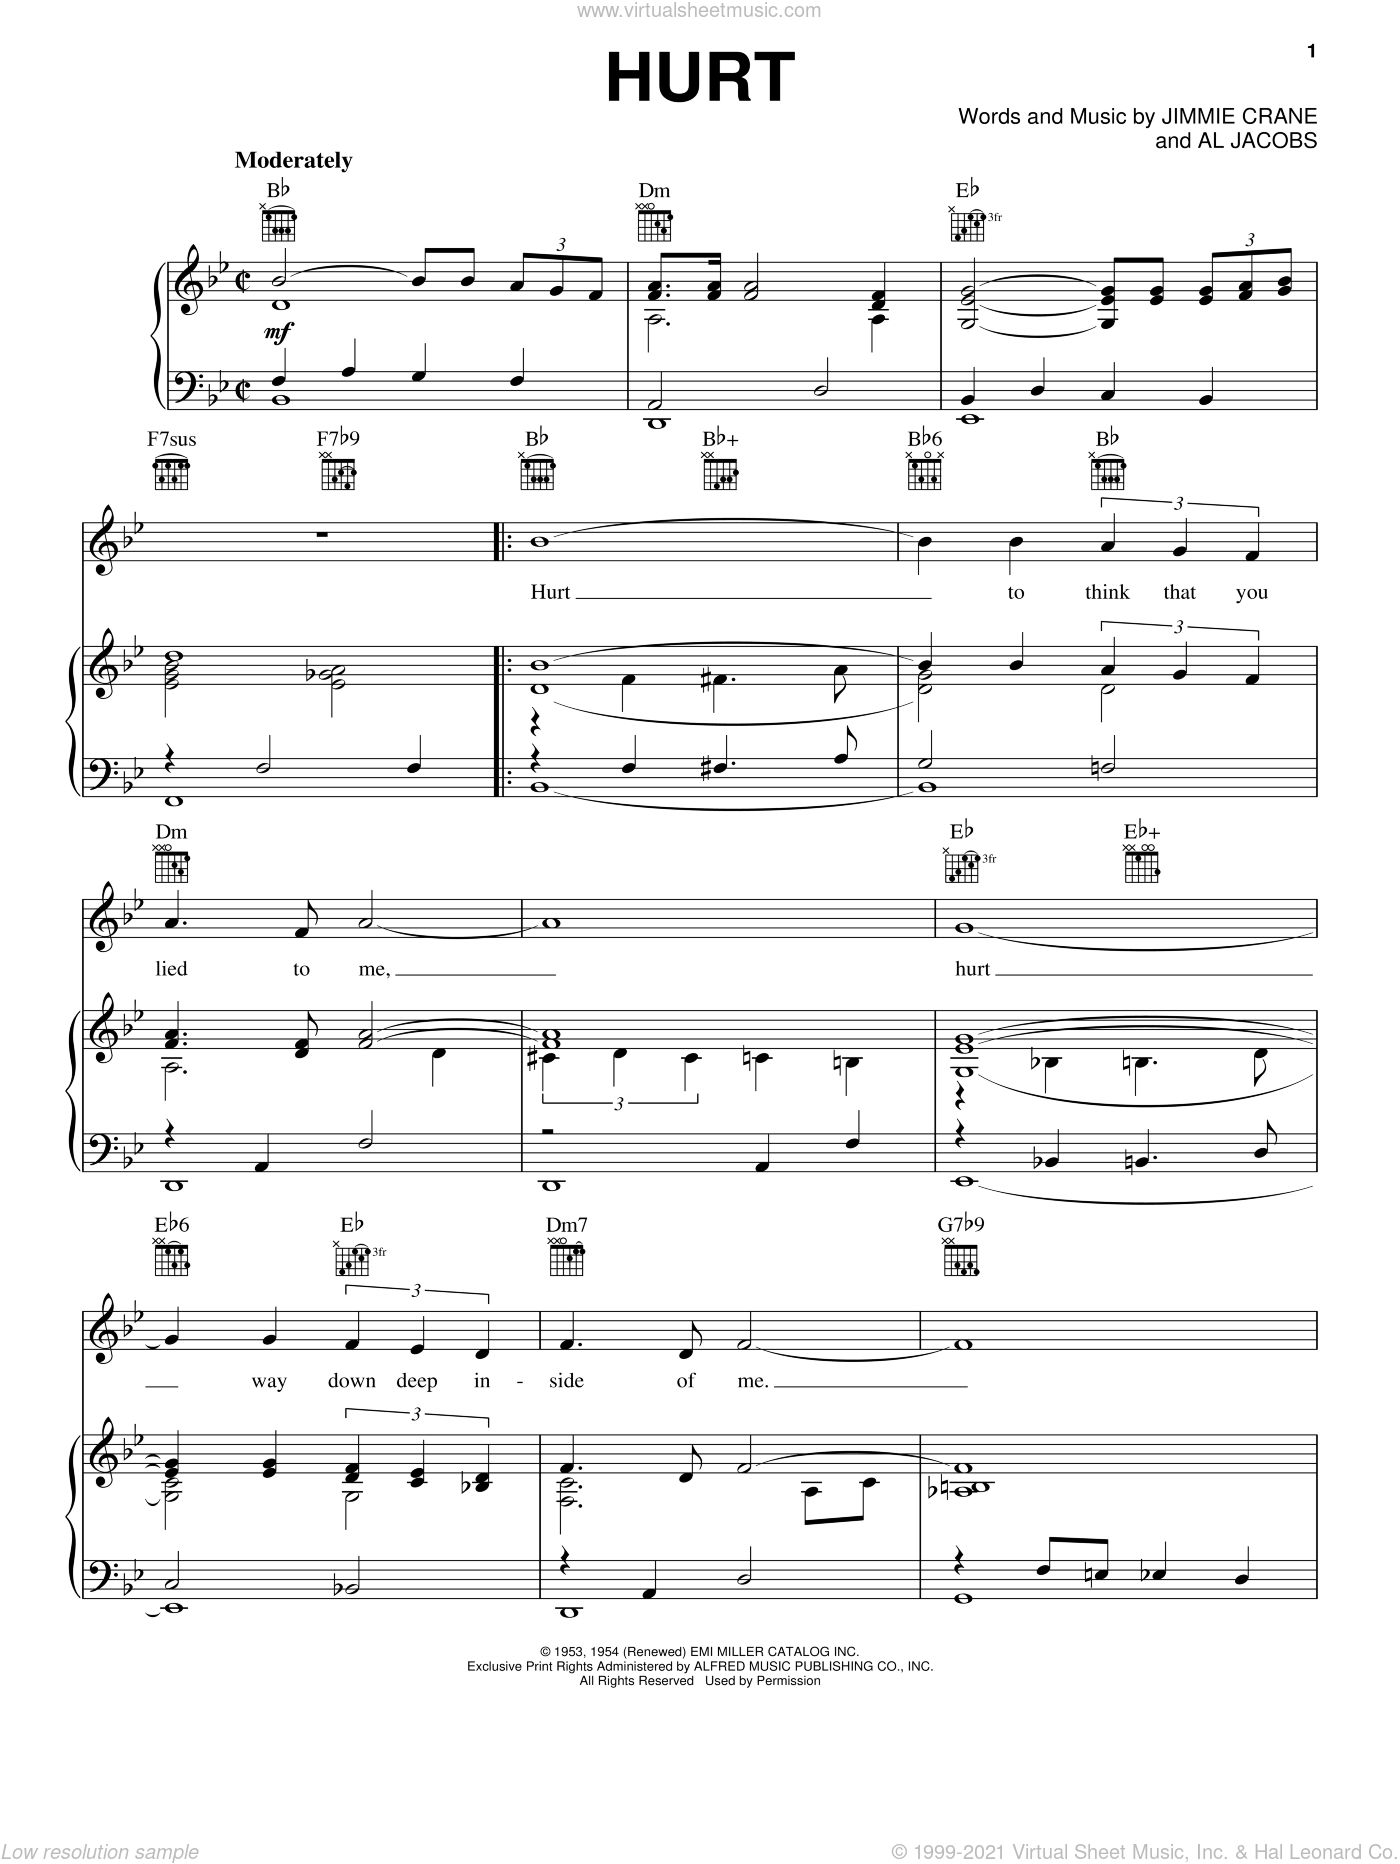 Hurt sheet music for voice, piano or guitar by Jimmie Crane